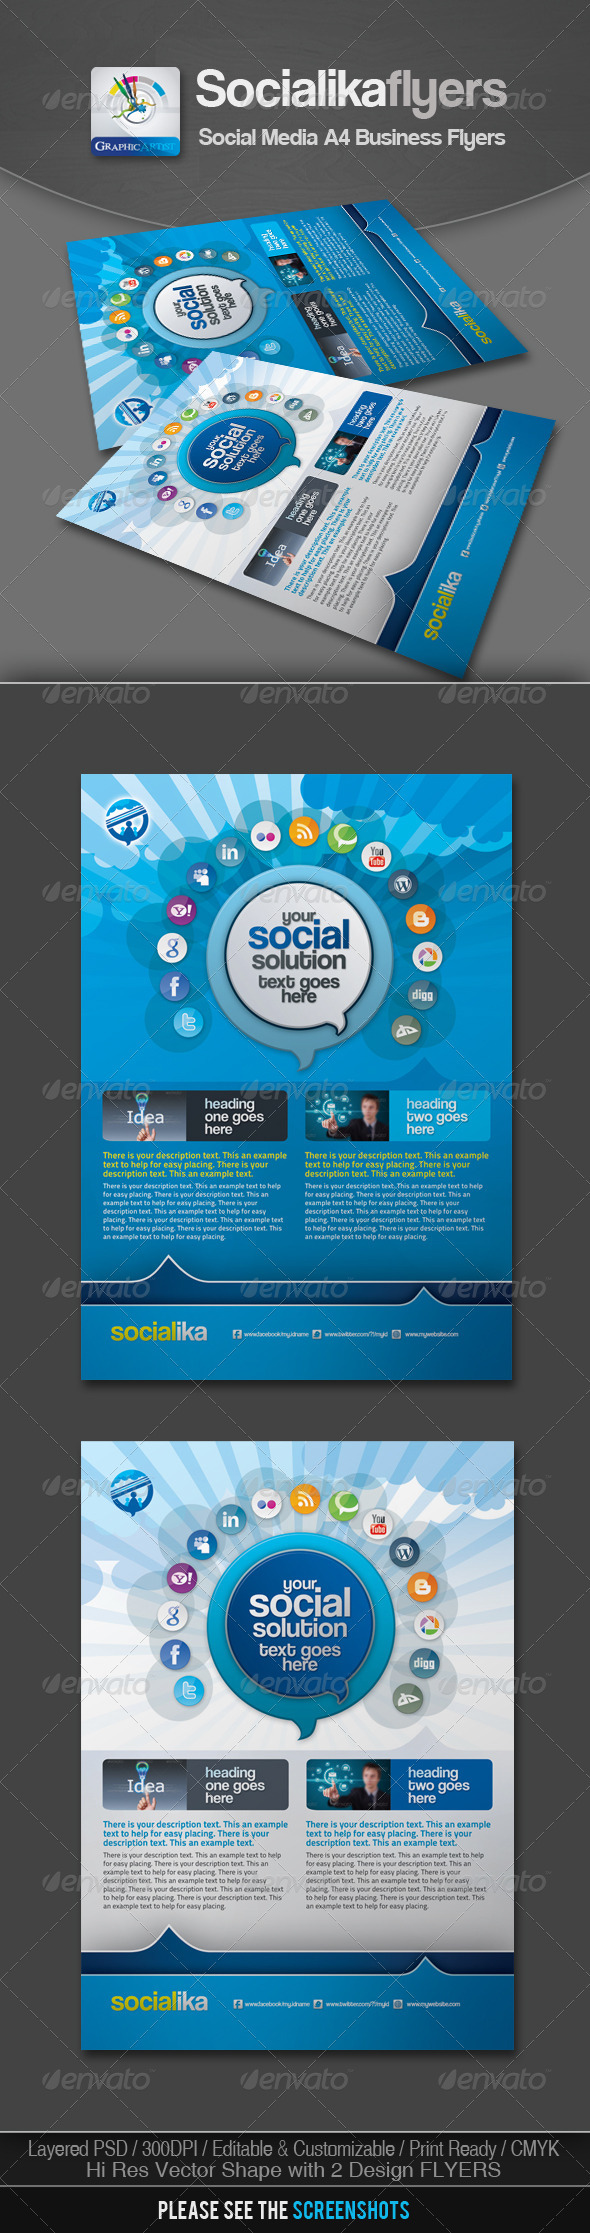 GraphicRiver Socialika Social Media Business Flyers 2687564